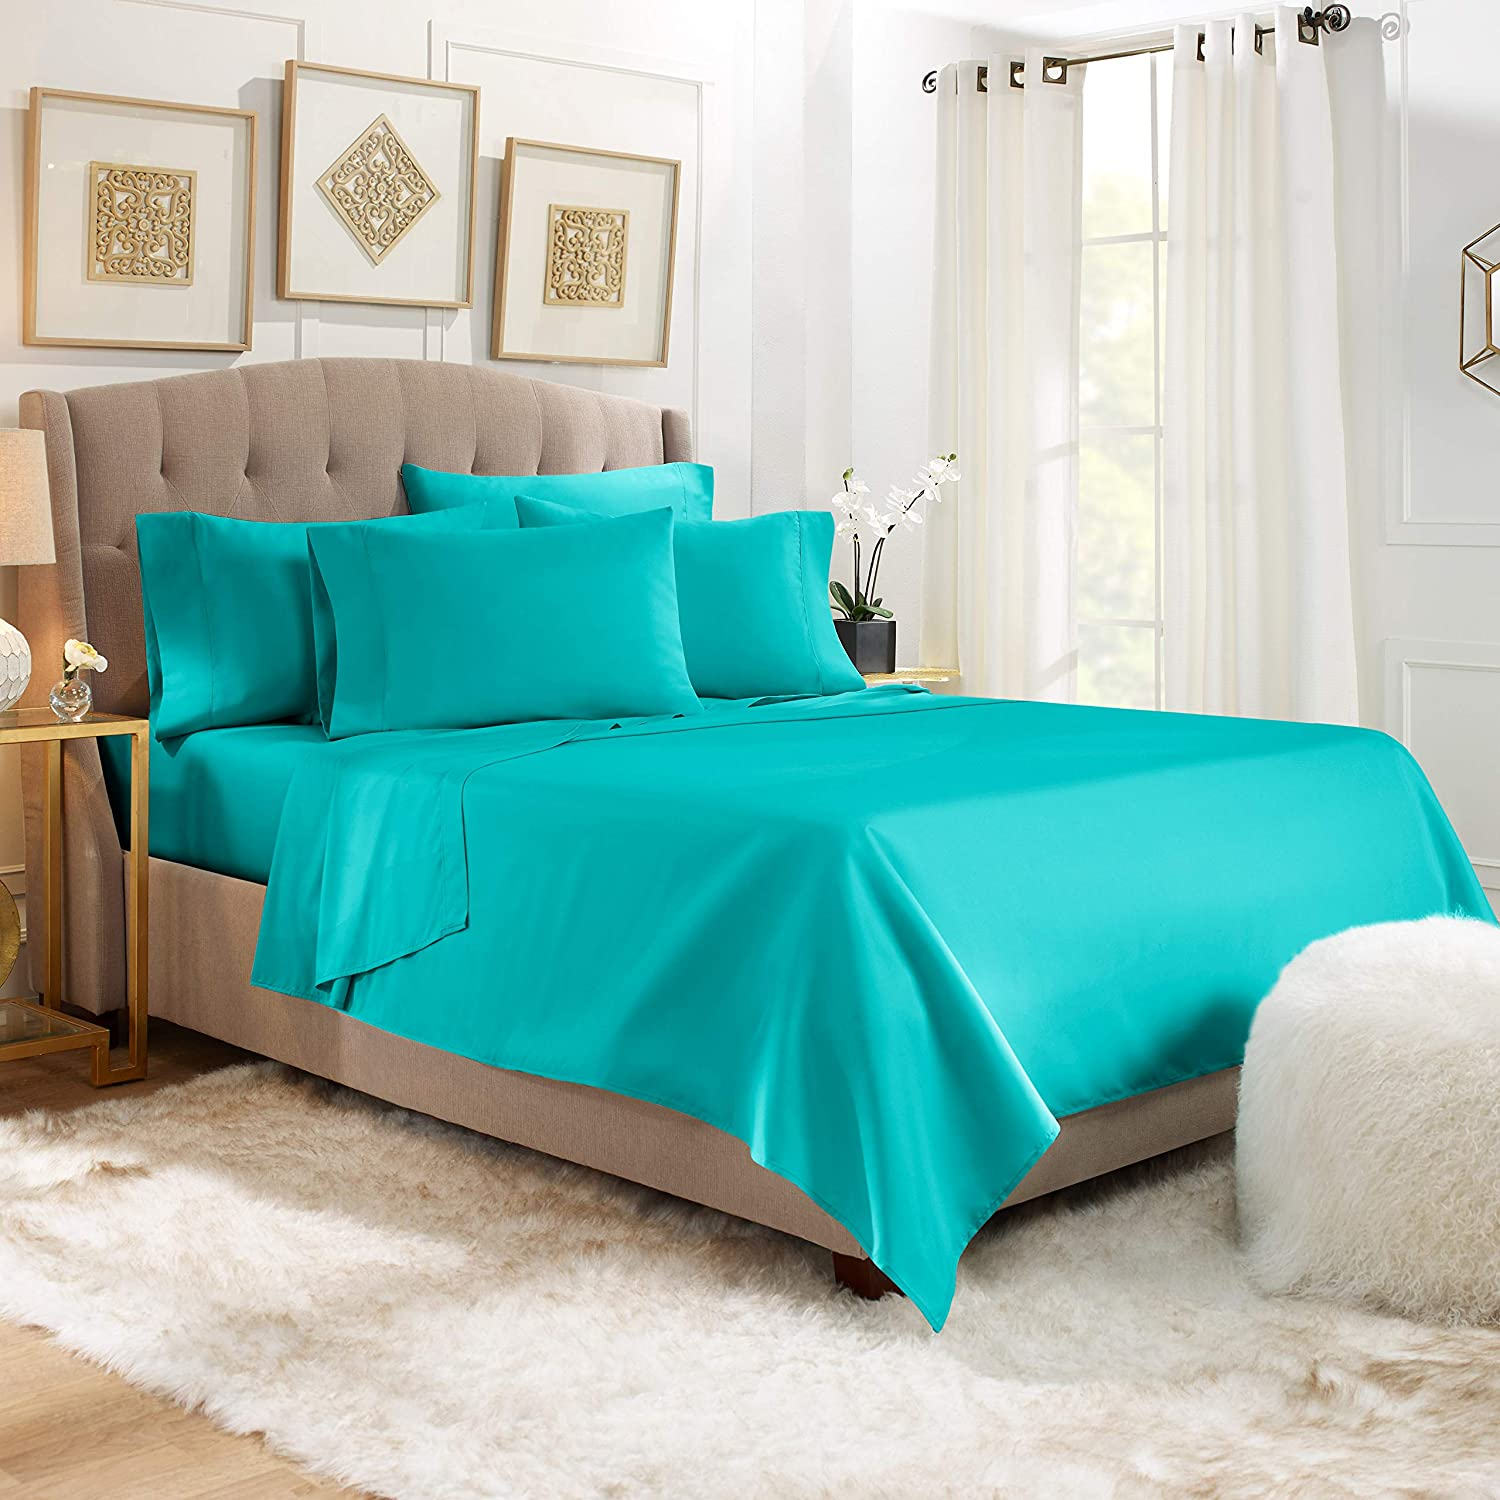 Empyrean Bedding Dallas Mall 6 Piece Bed Sheet 1 Pillowcases: with Extra Set year warranty